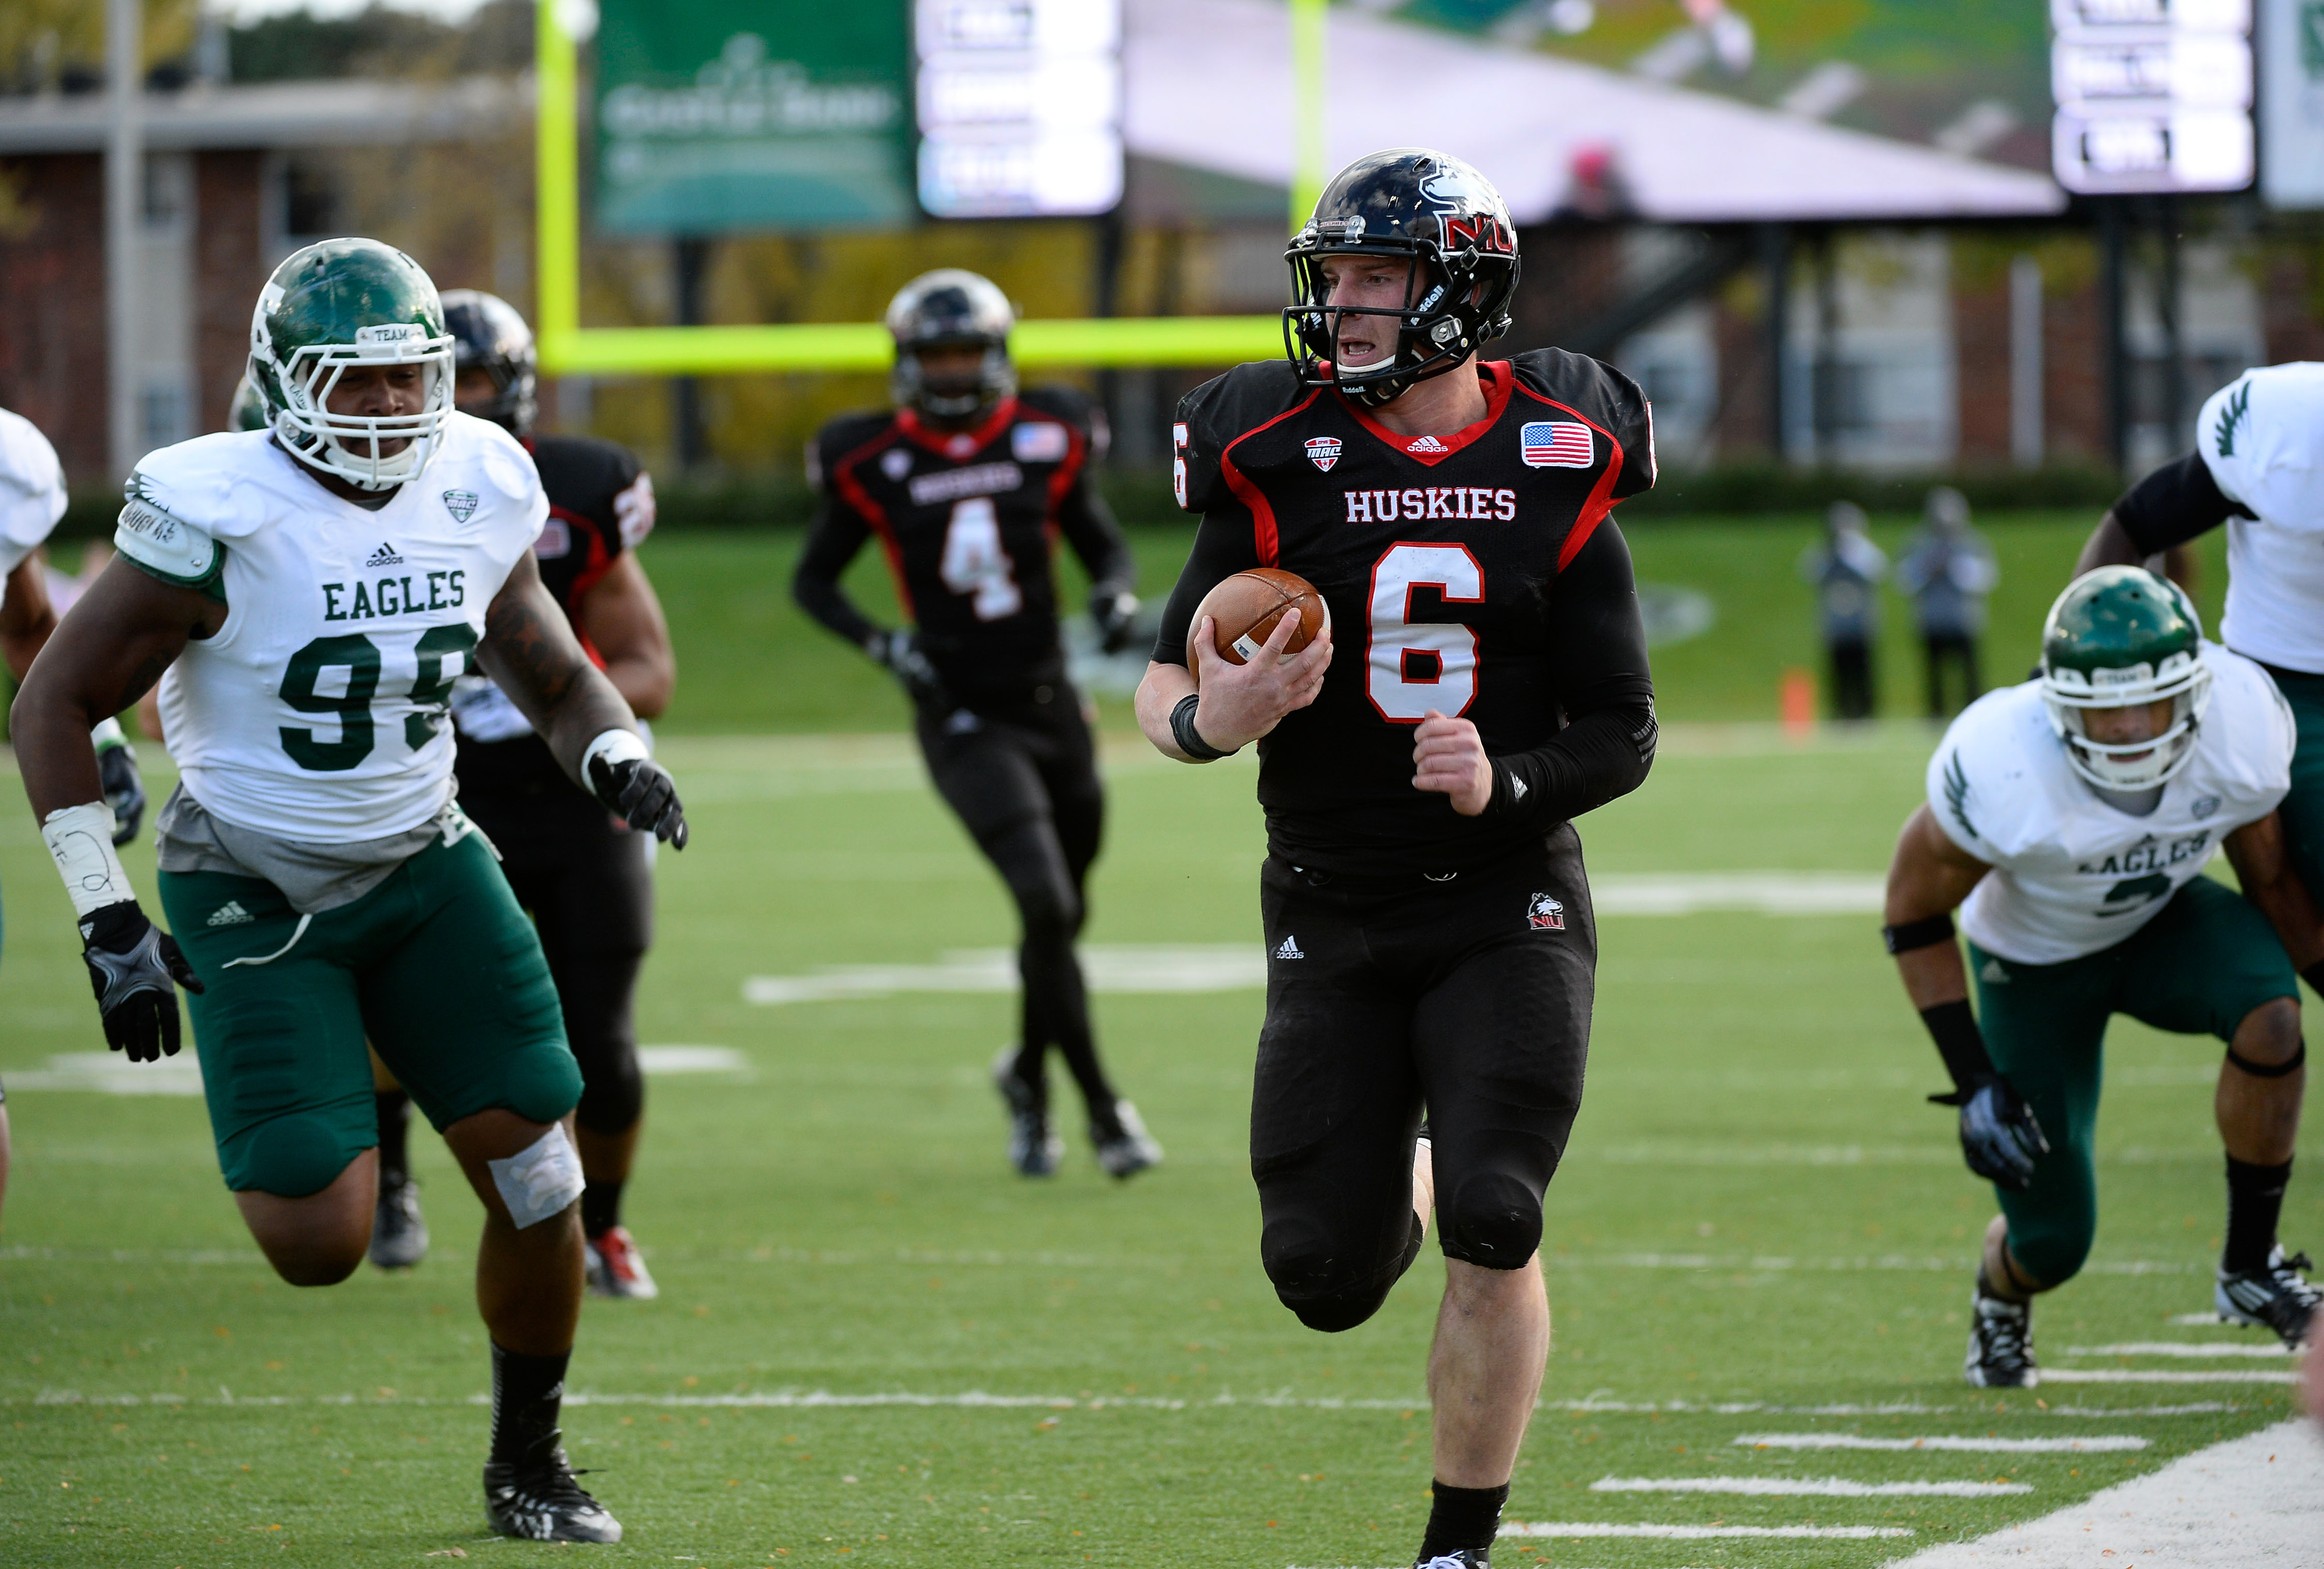 Jordan Lynch and the NIU Huskies are closing in quickly on the No. 1 Fresno State Bulldgos.